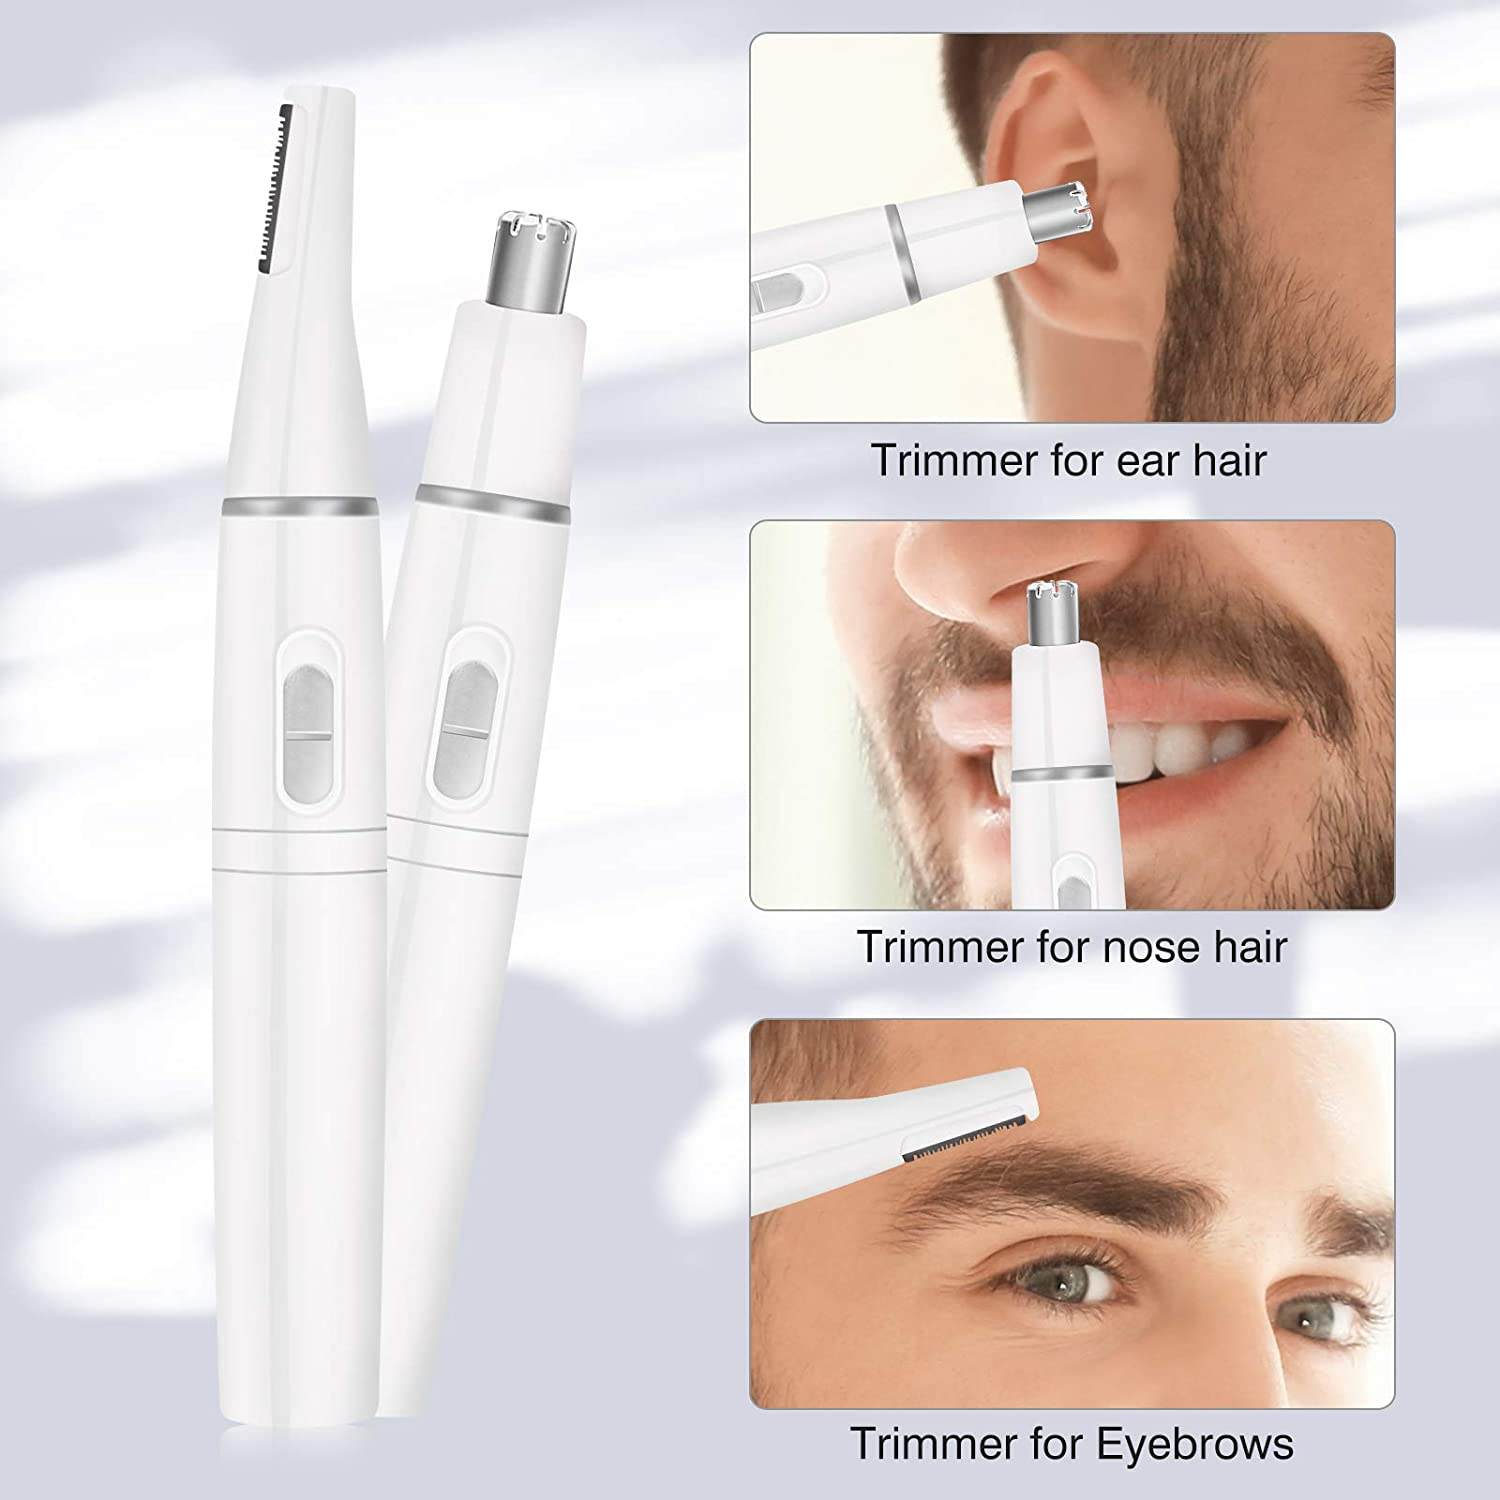 2 In 1 Nose Hair Trimmer For Men Professional Painless Eyebrow Trimmer Electric Facial Hair Removal Razor For Women Makeup Tool